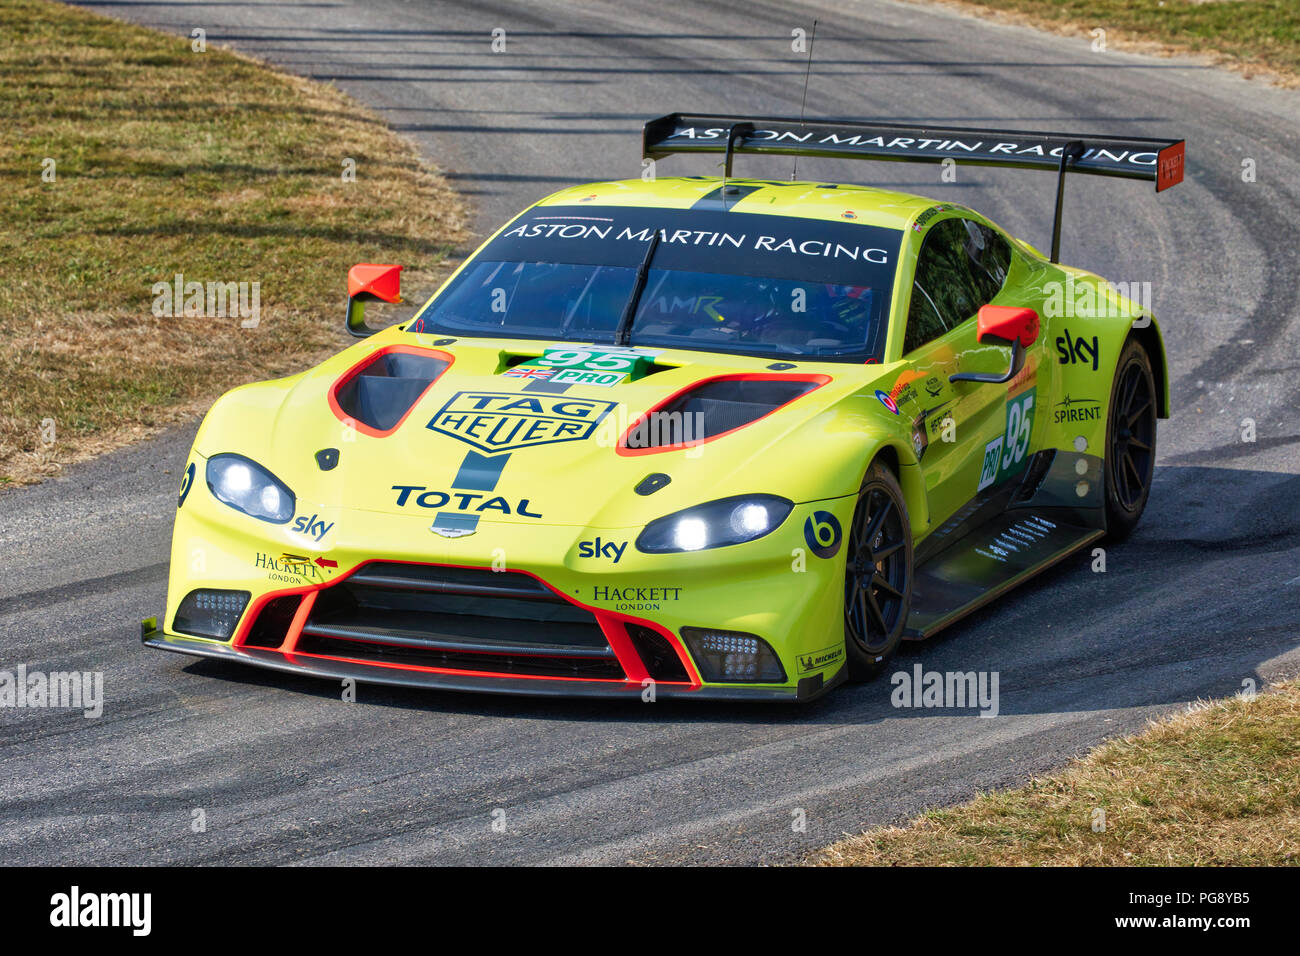 2018 Aston Martin V8 Vantage Gte Le Mans Racer With Driver Nicki Thiim At The 2018 Goodwood Festival Of Speed Sussex Uk Stock Photo Alamy